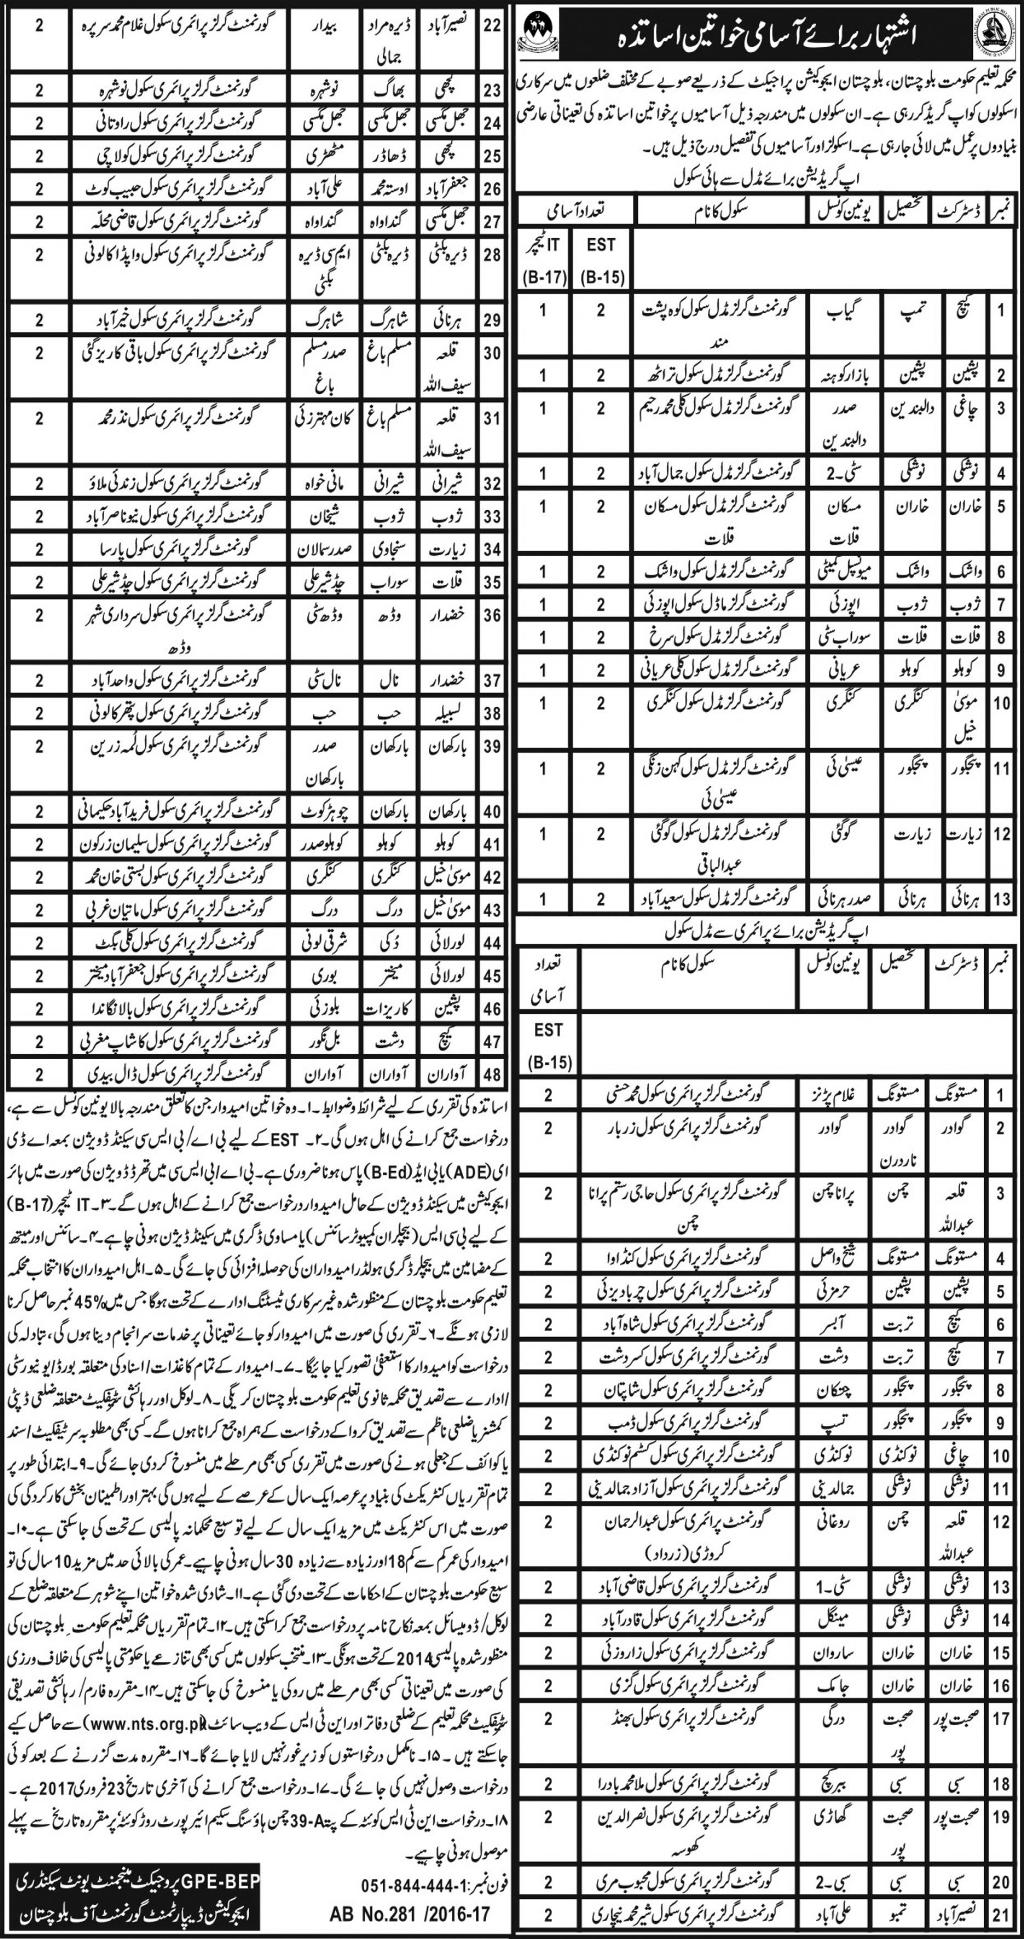 Secondary Education Department Balochistan Jobs 2017 NTS Form, Last Date